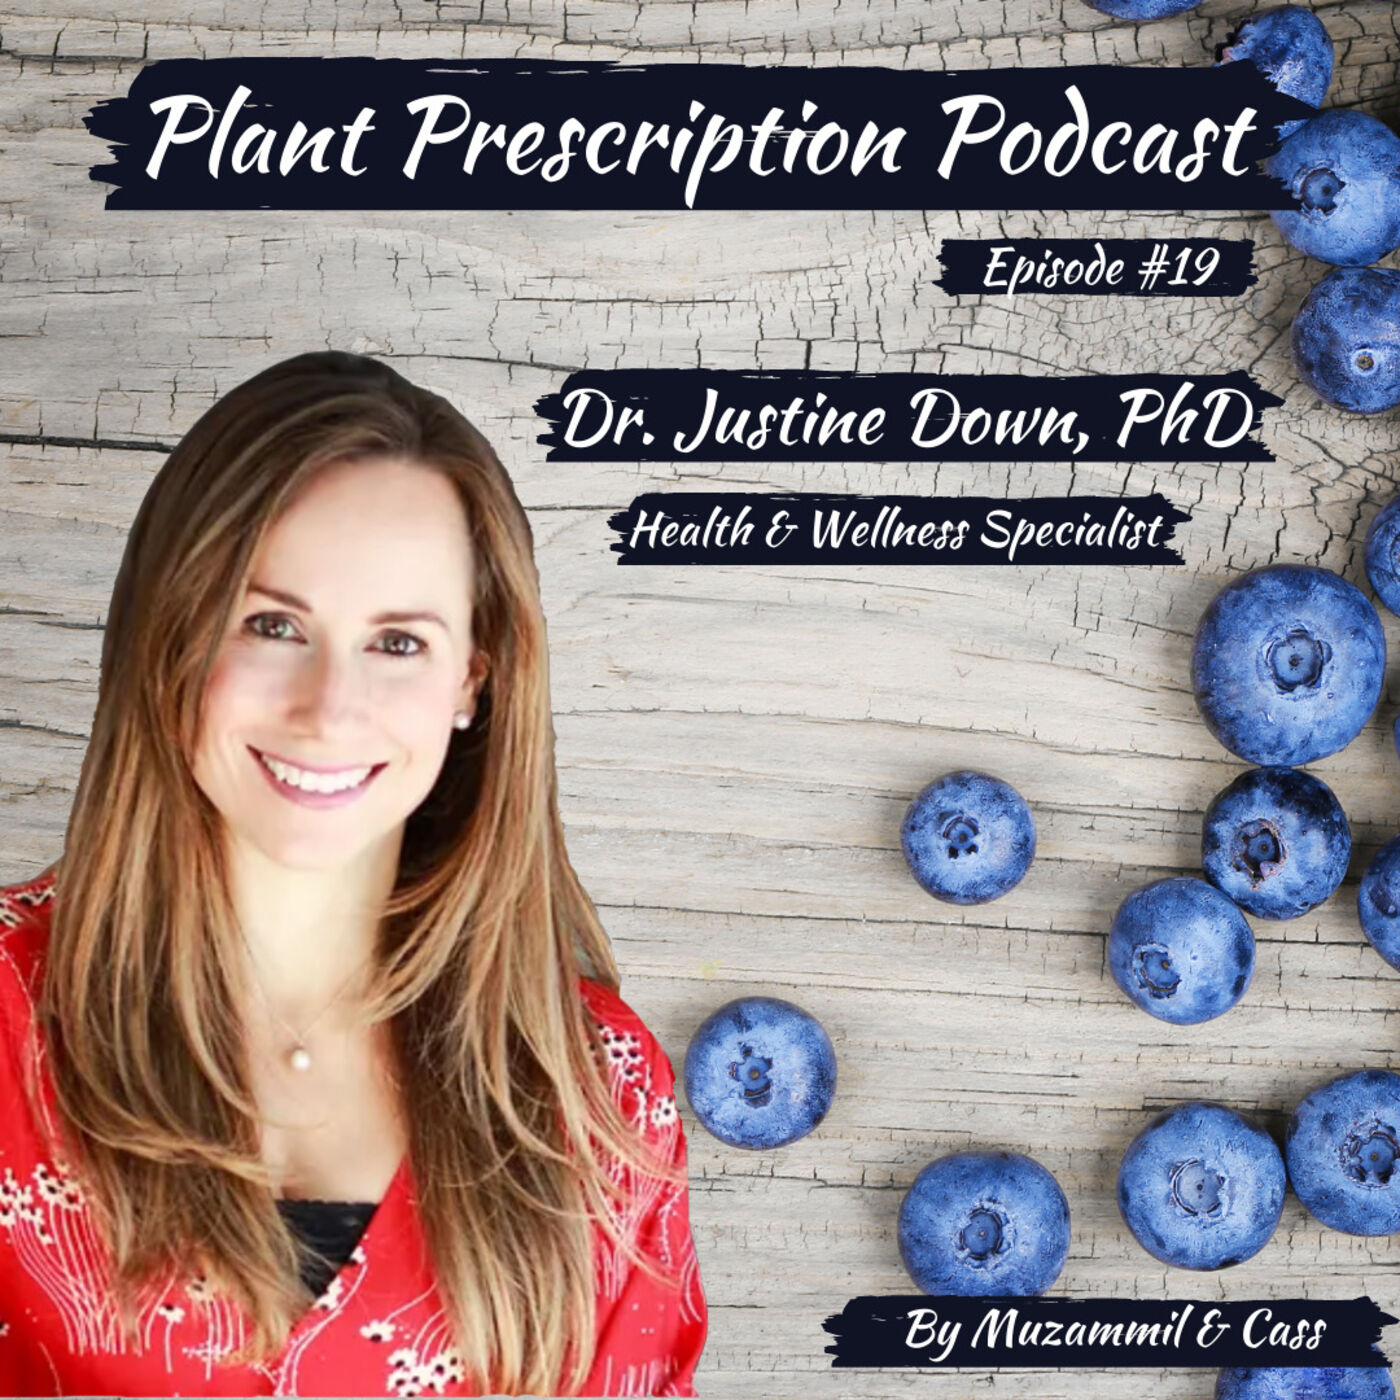 Self-compassion and navigating chronic diseases (like celiac disease) with Dr. Justine Dowd, PhD